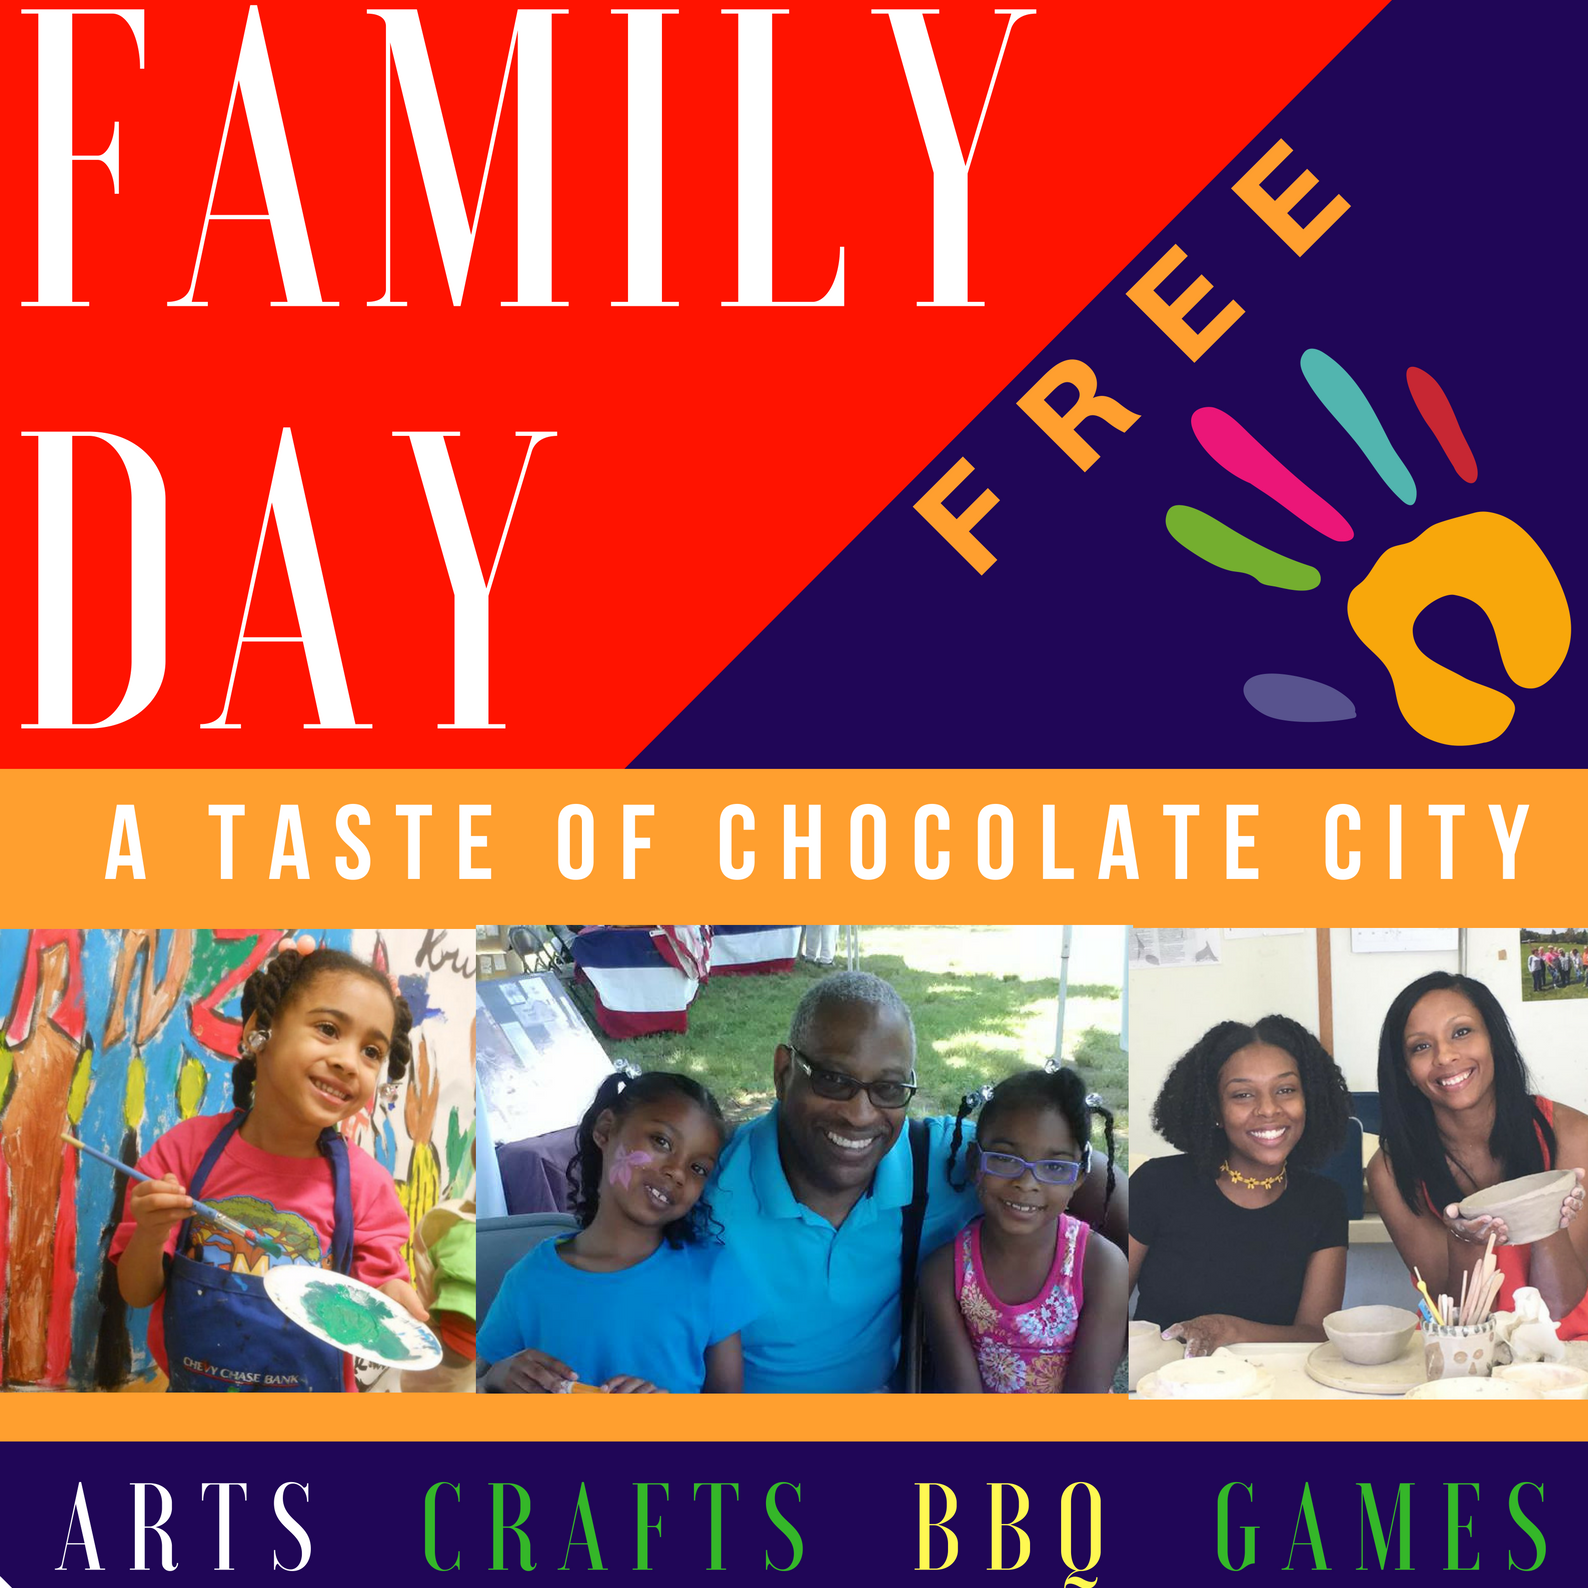 A Taste of Chocolate City Family Day